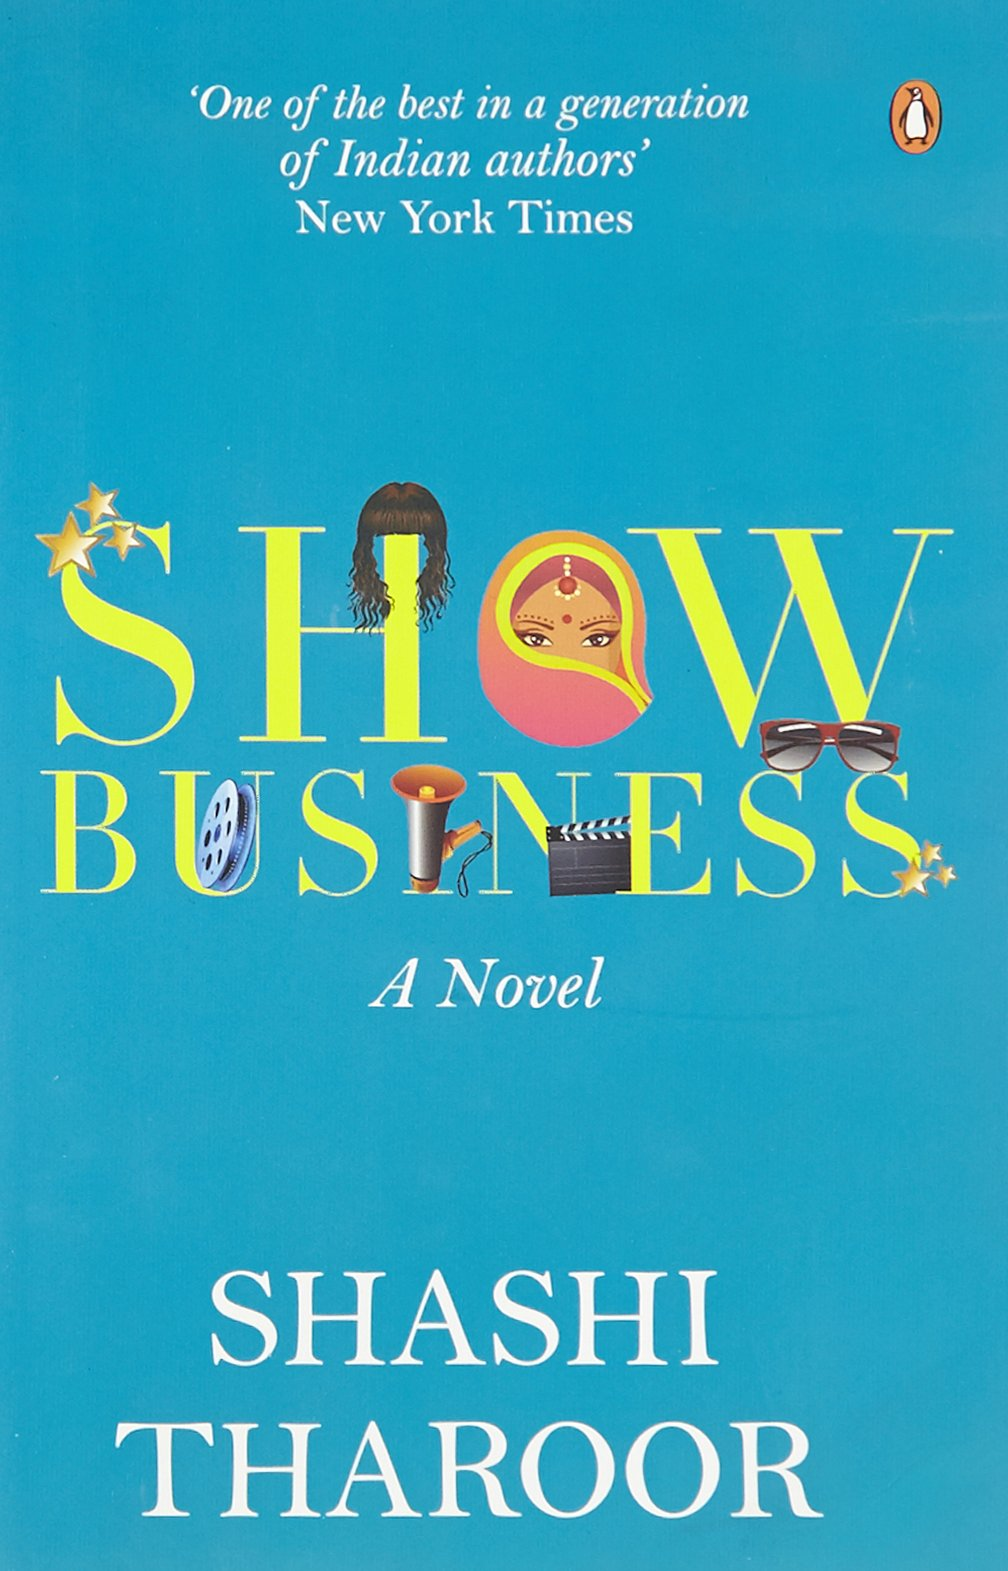 show_business_shashi_tharoor